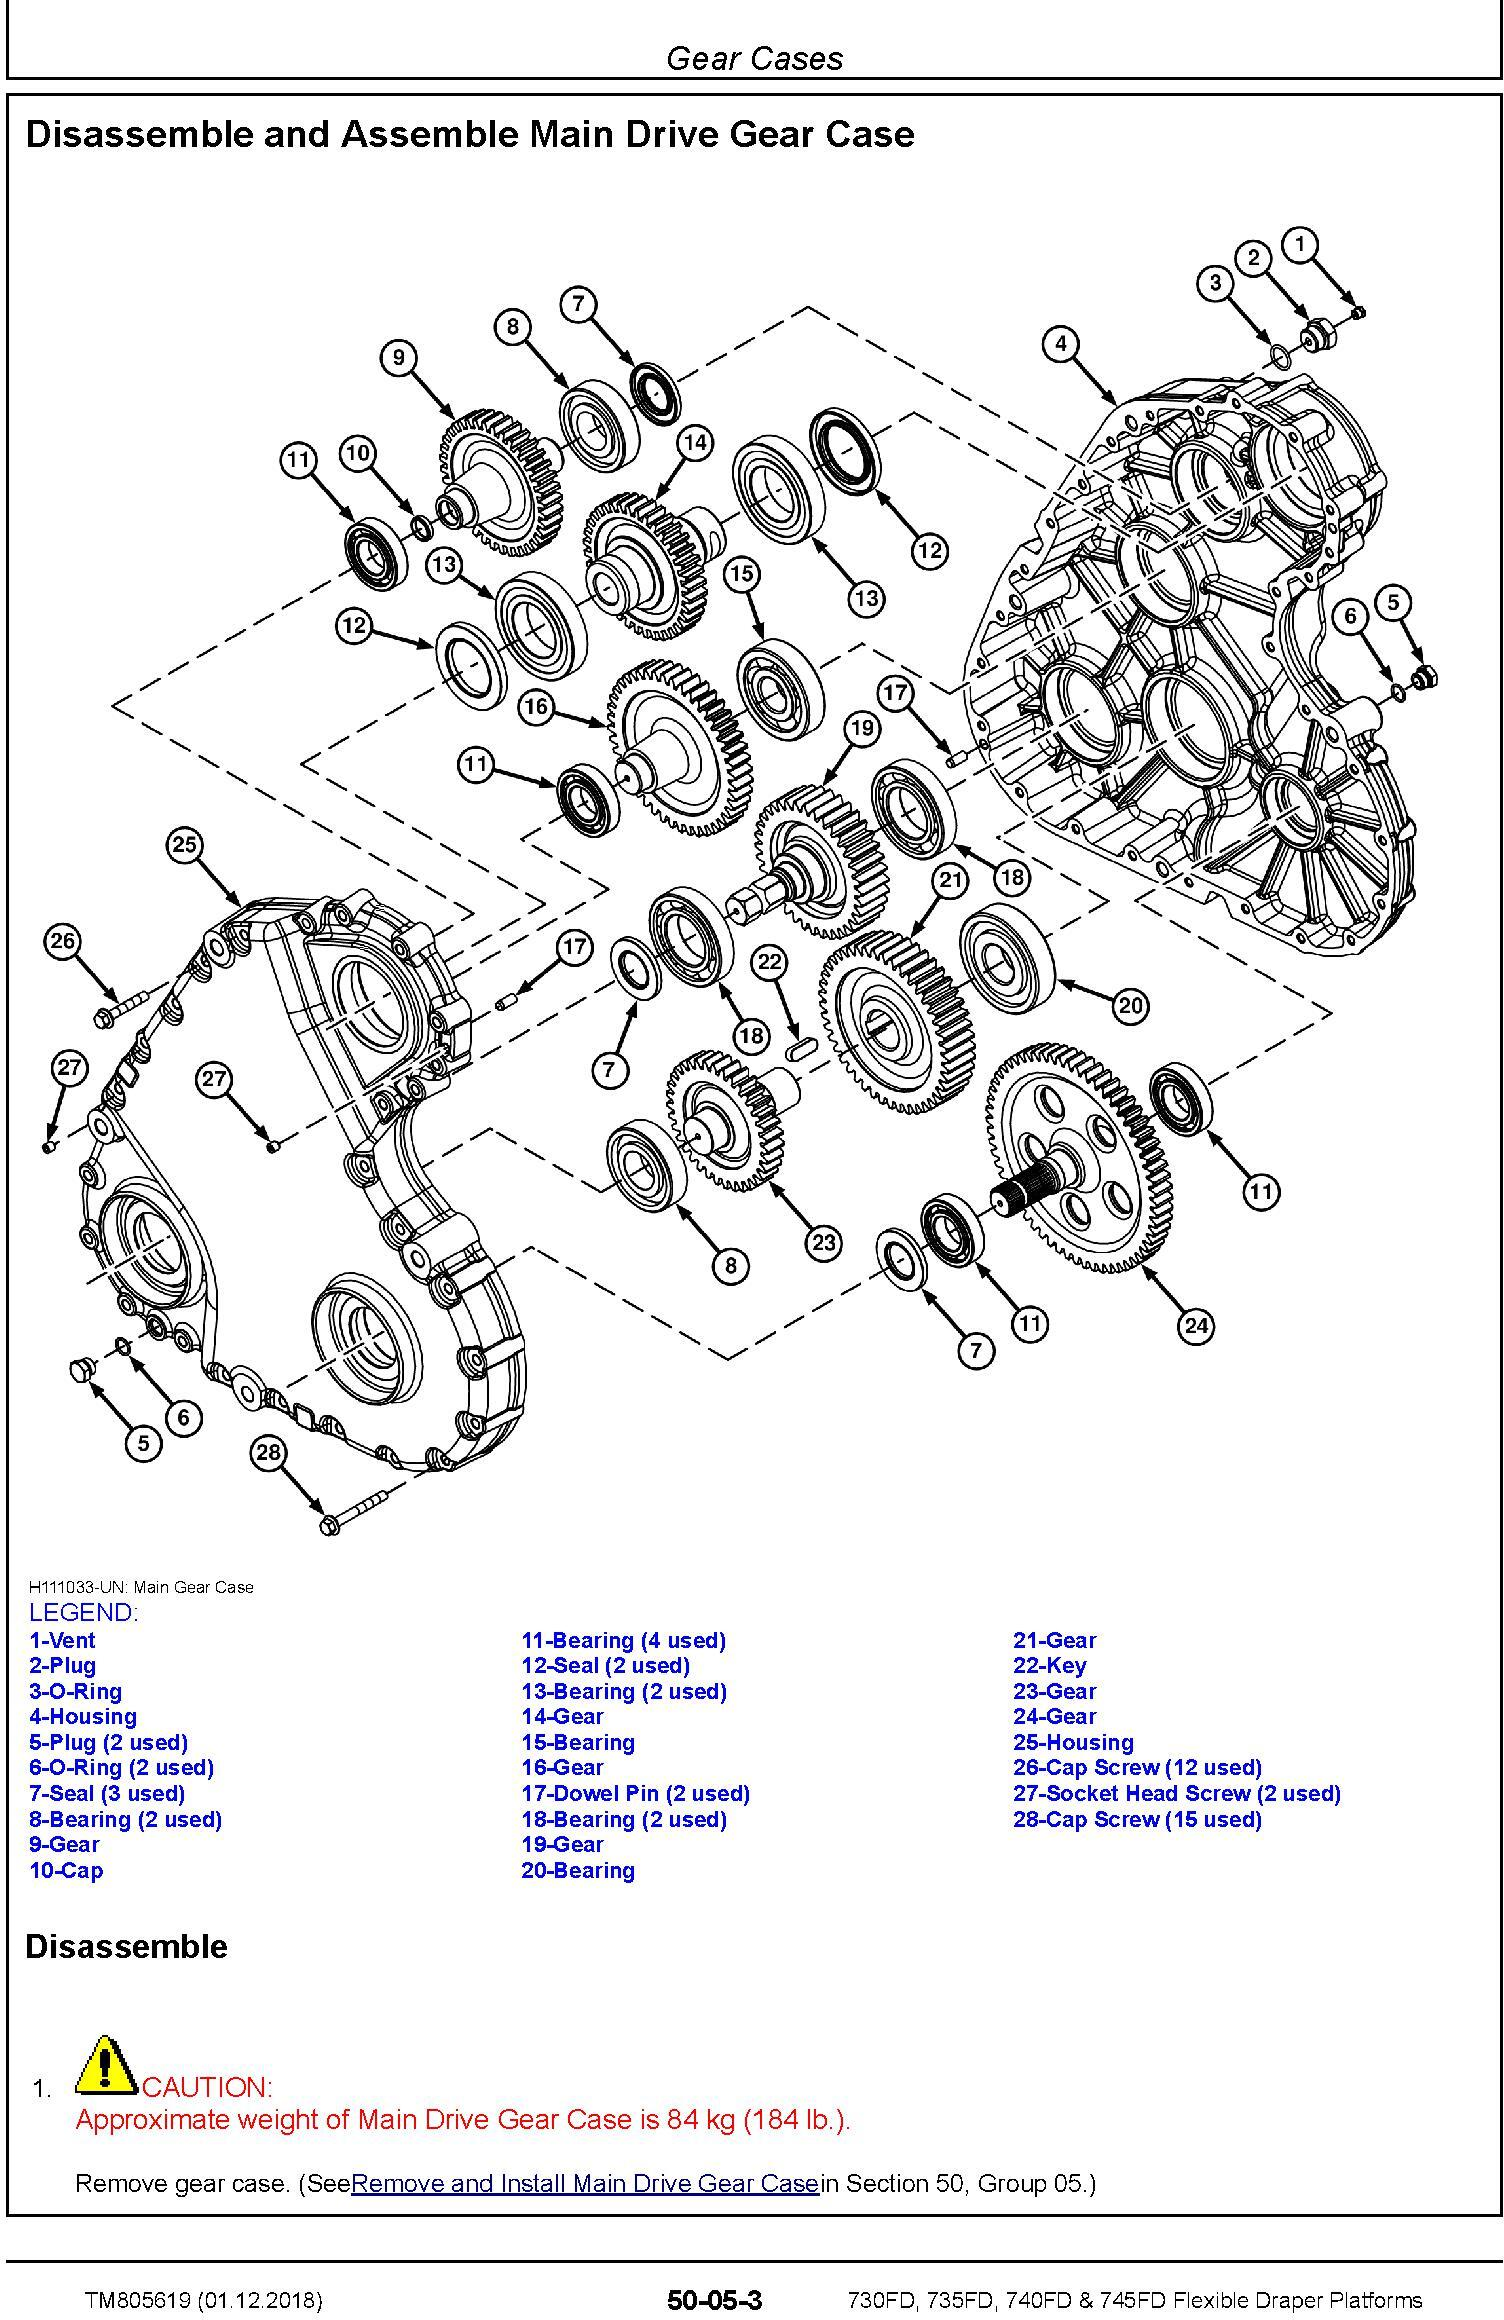 John Deere 730FD, 735FD, 740FD & 745FD Flexible Draper Platforms Repair Technical Manual (TM805619) - 1